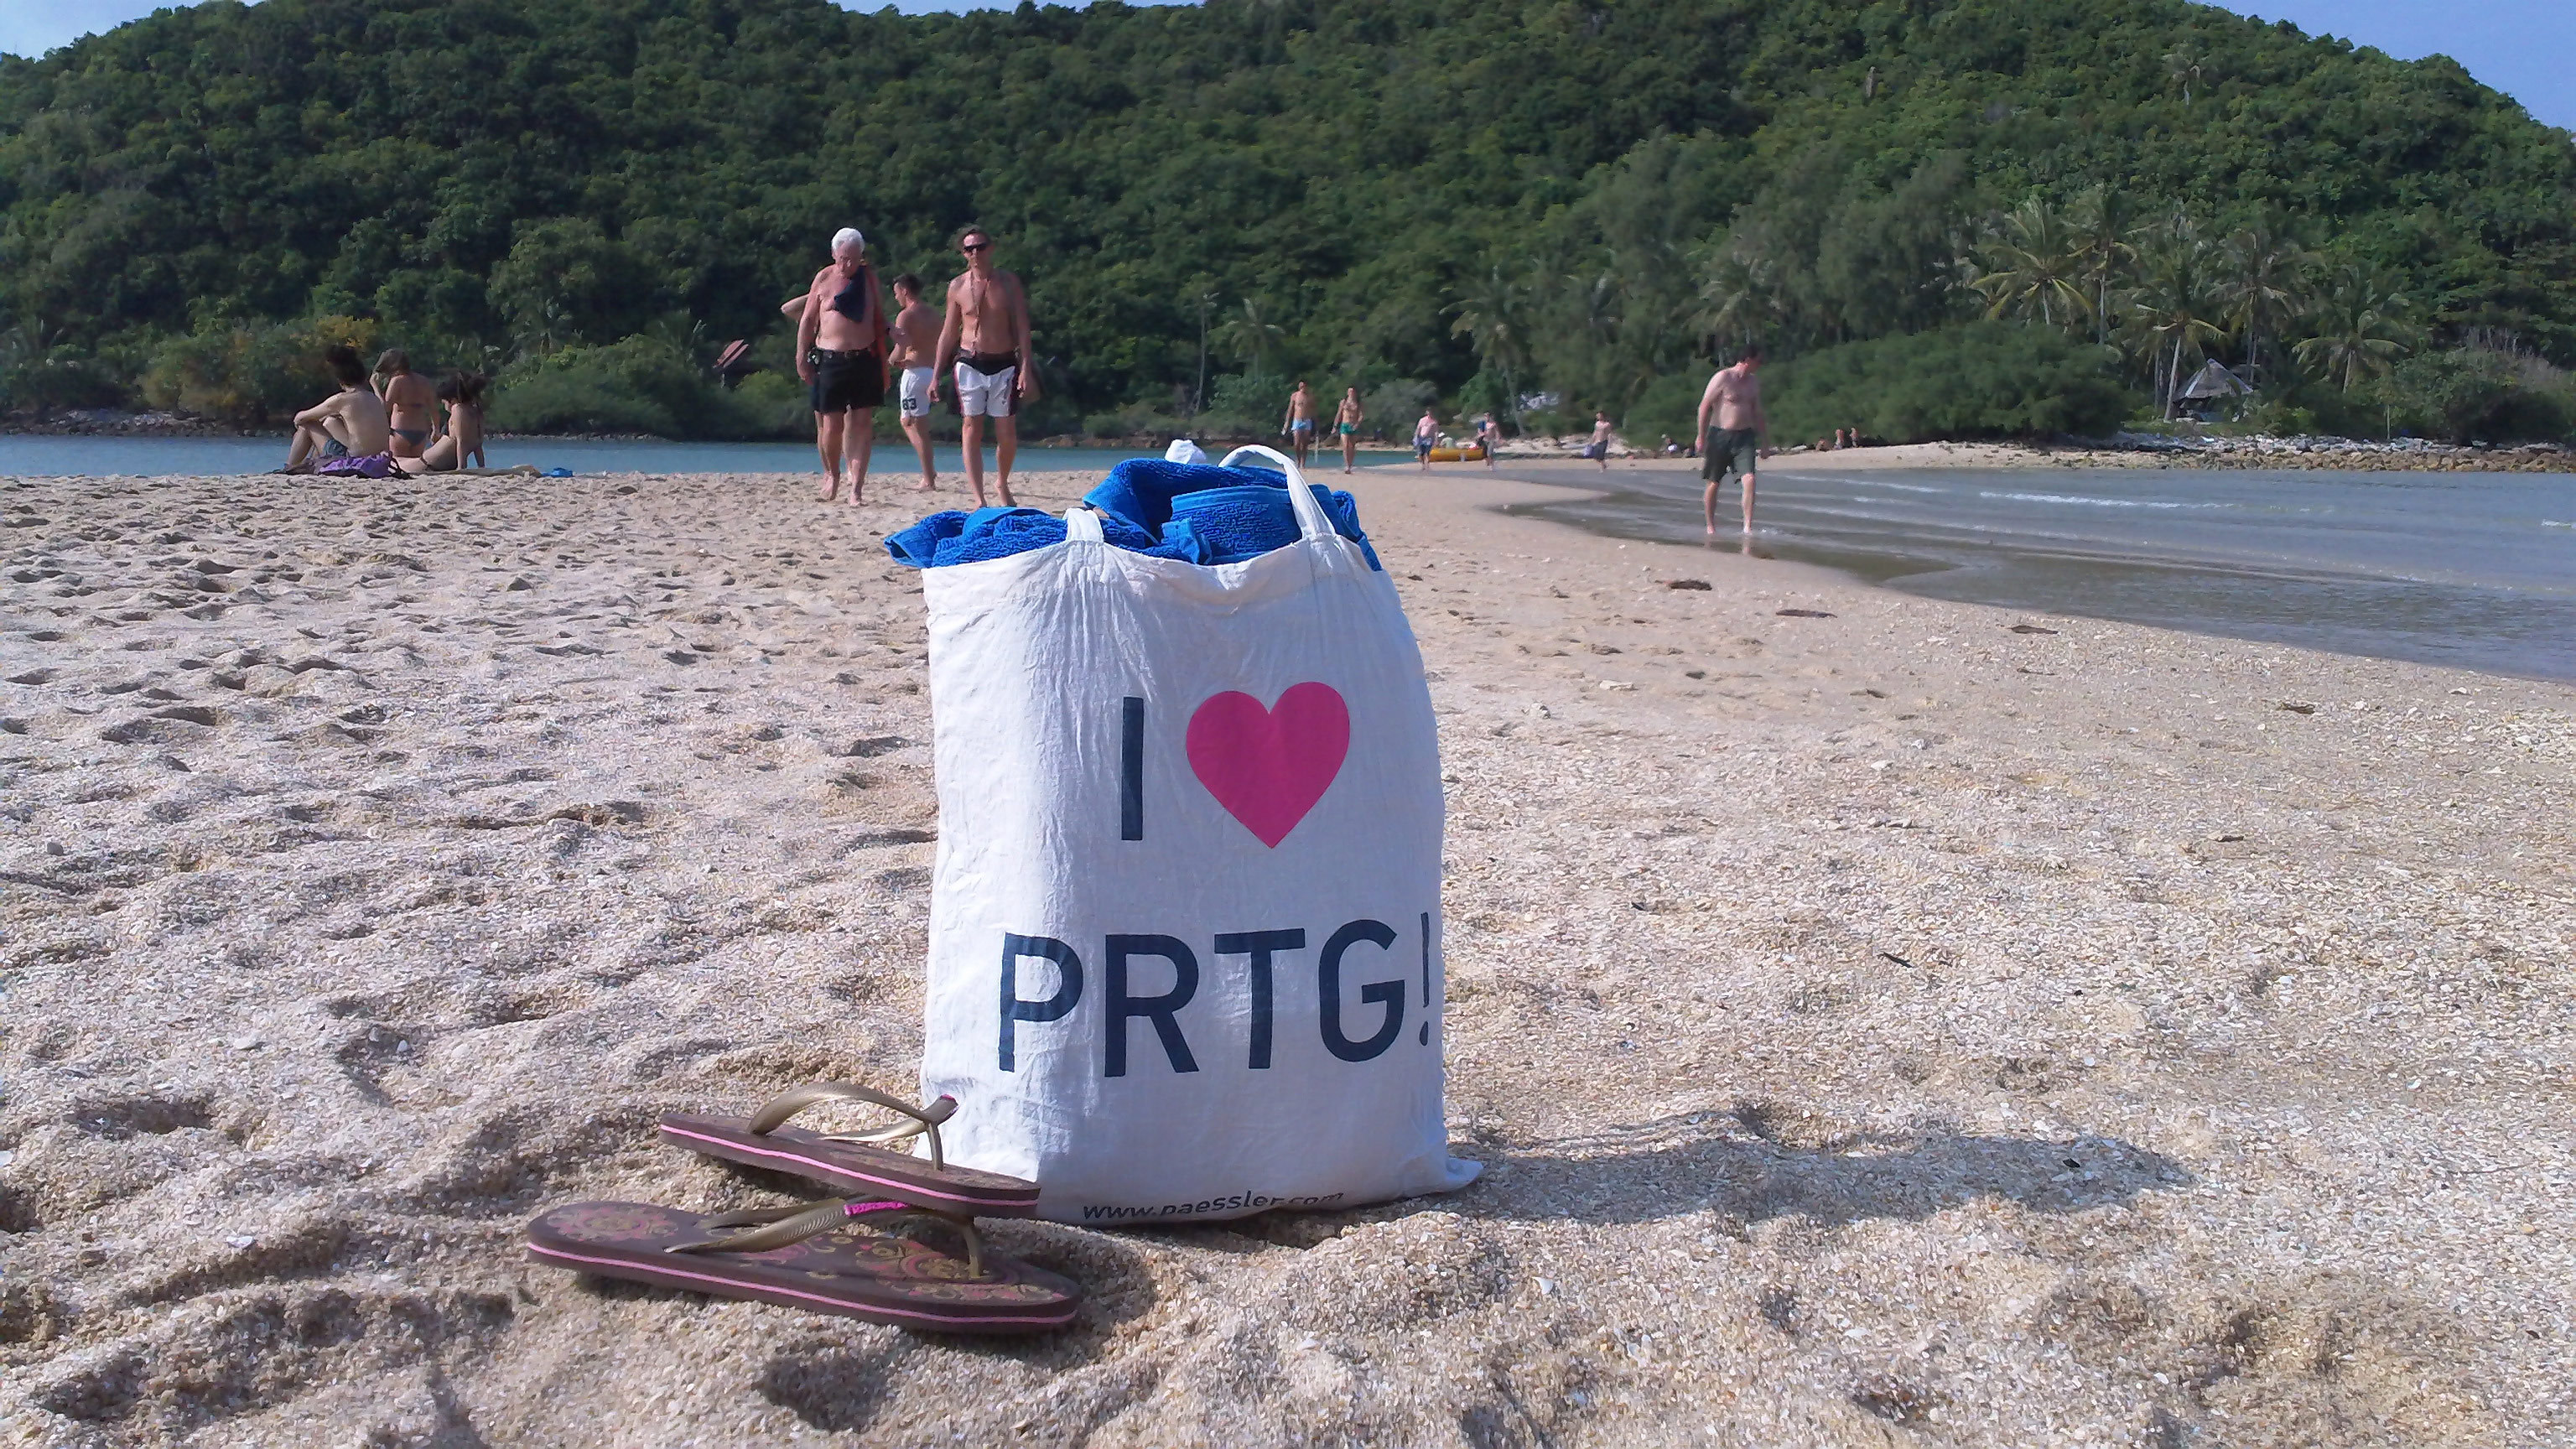 Relaxing at a beach on Koh Phangan island in Thailand - thanks to PRTG!